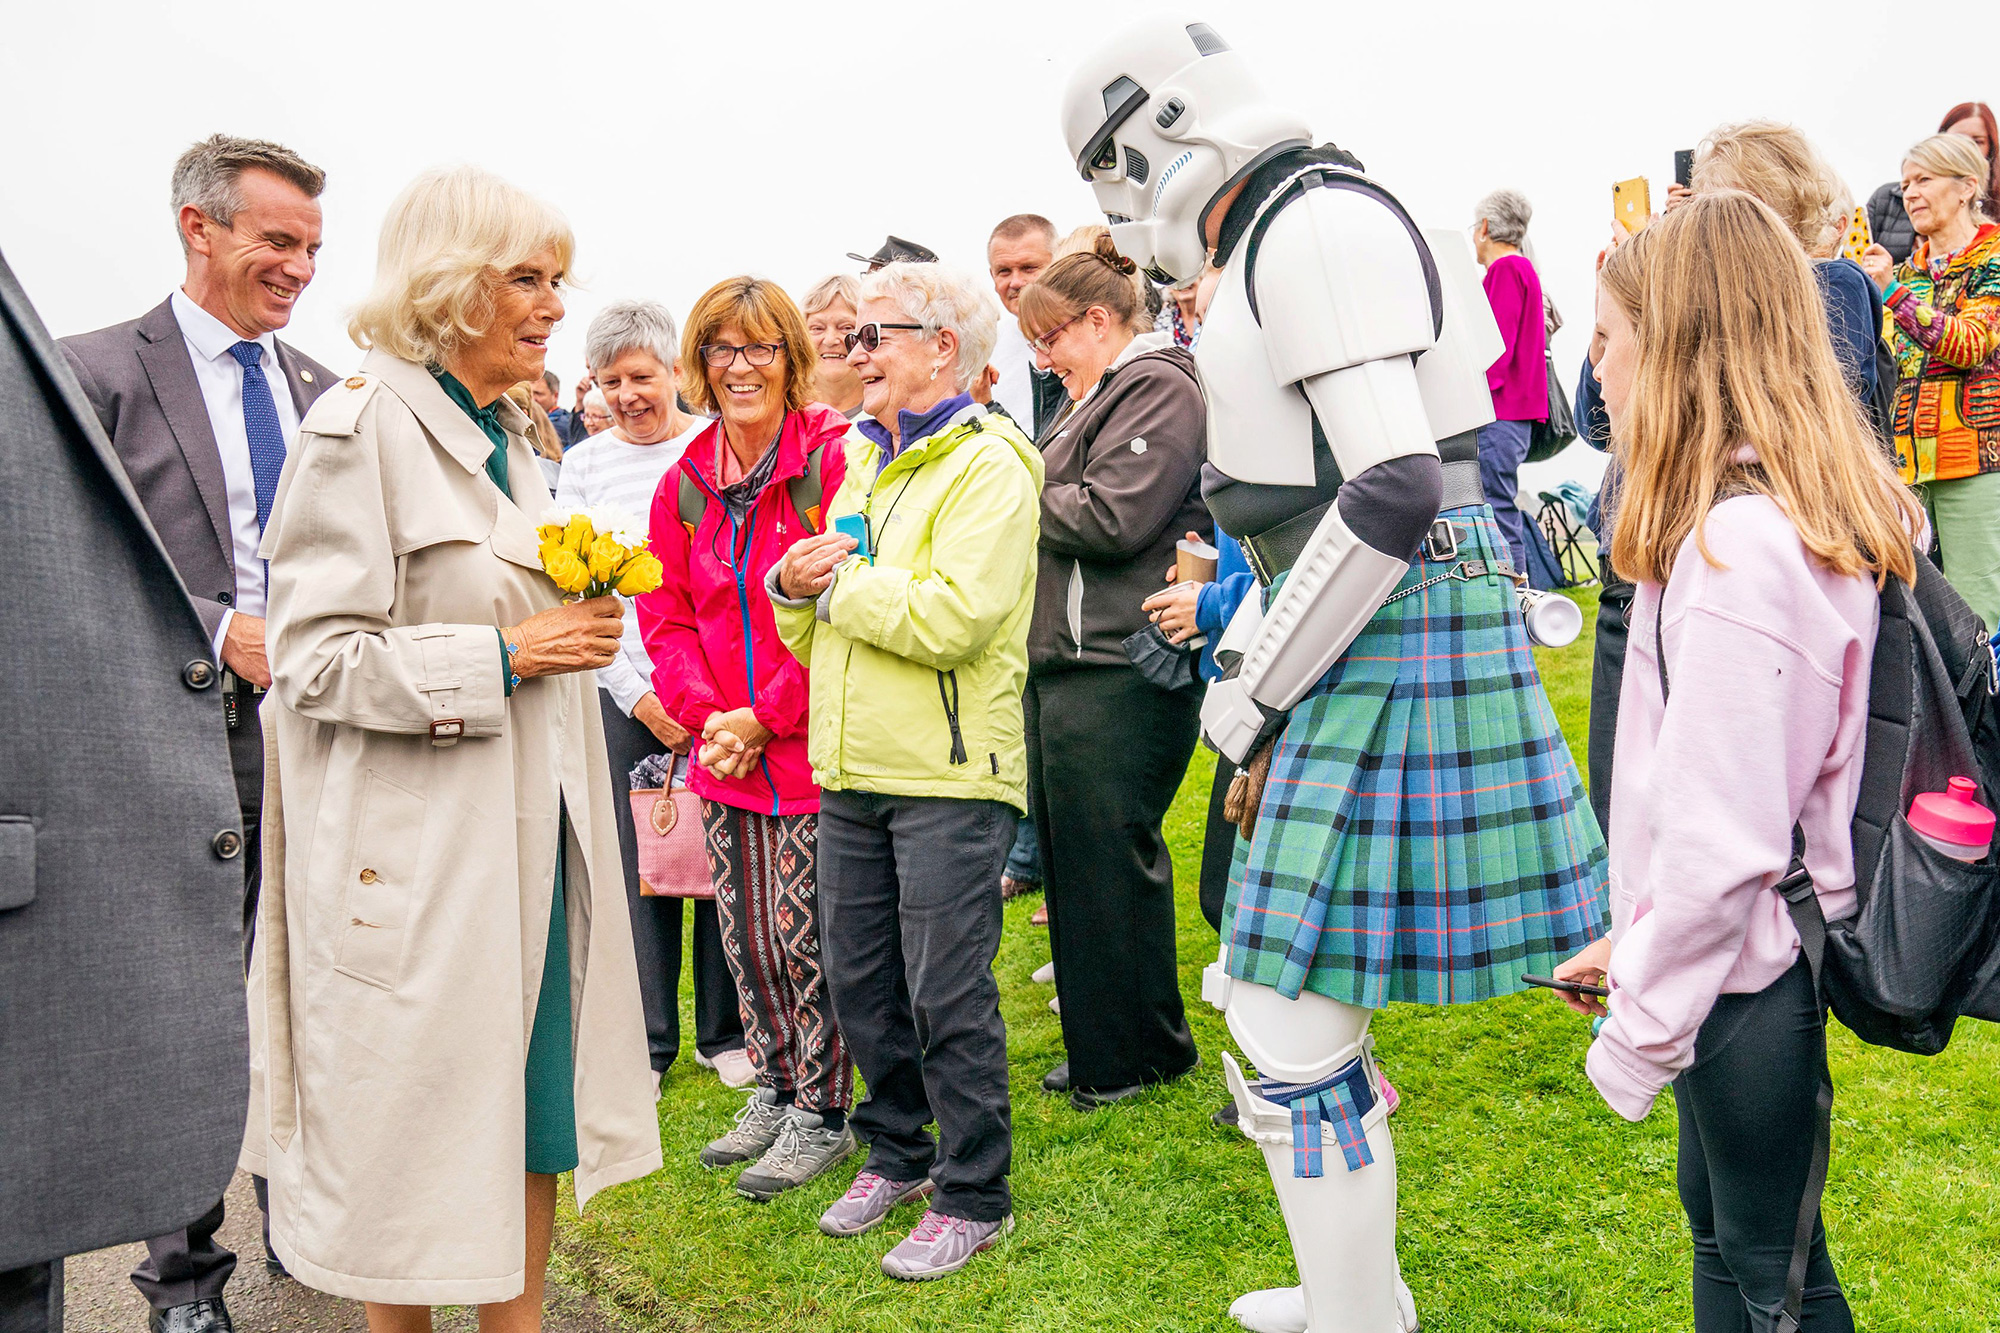 Britain's Camilla, Duchess of Cornwall (L) meets a person dressed as a Stormtrooper (2R) wearing a kilt at the opening of the Team Hamish Splashpad in Nairn, Scotland on September 10, 2021.